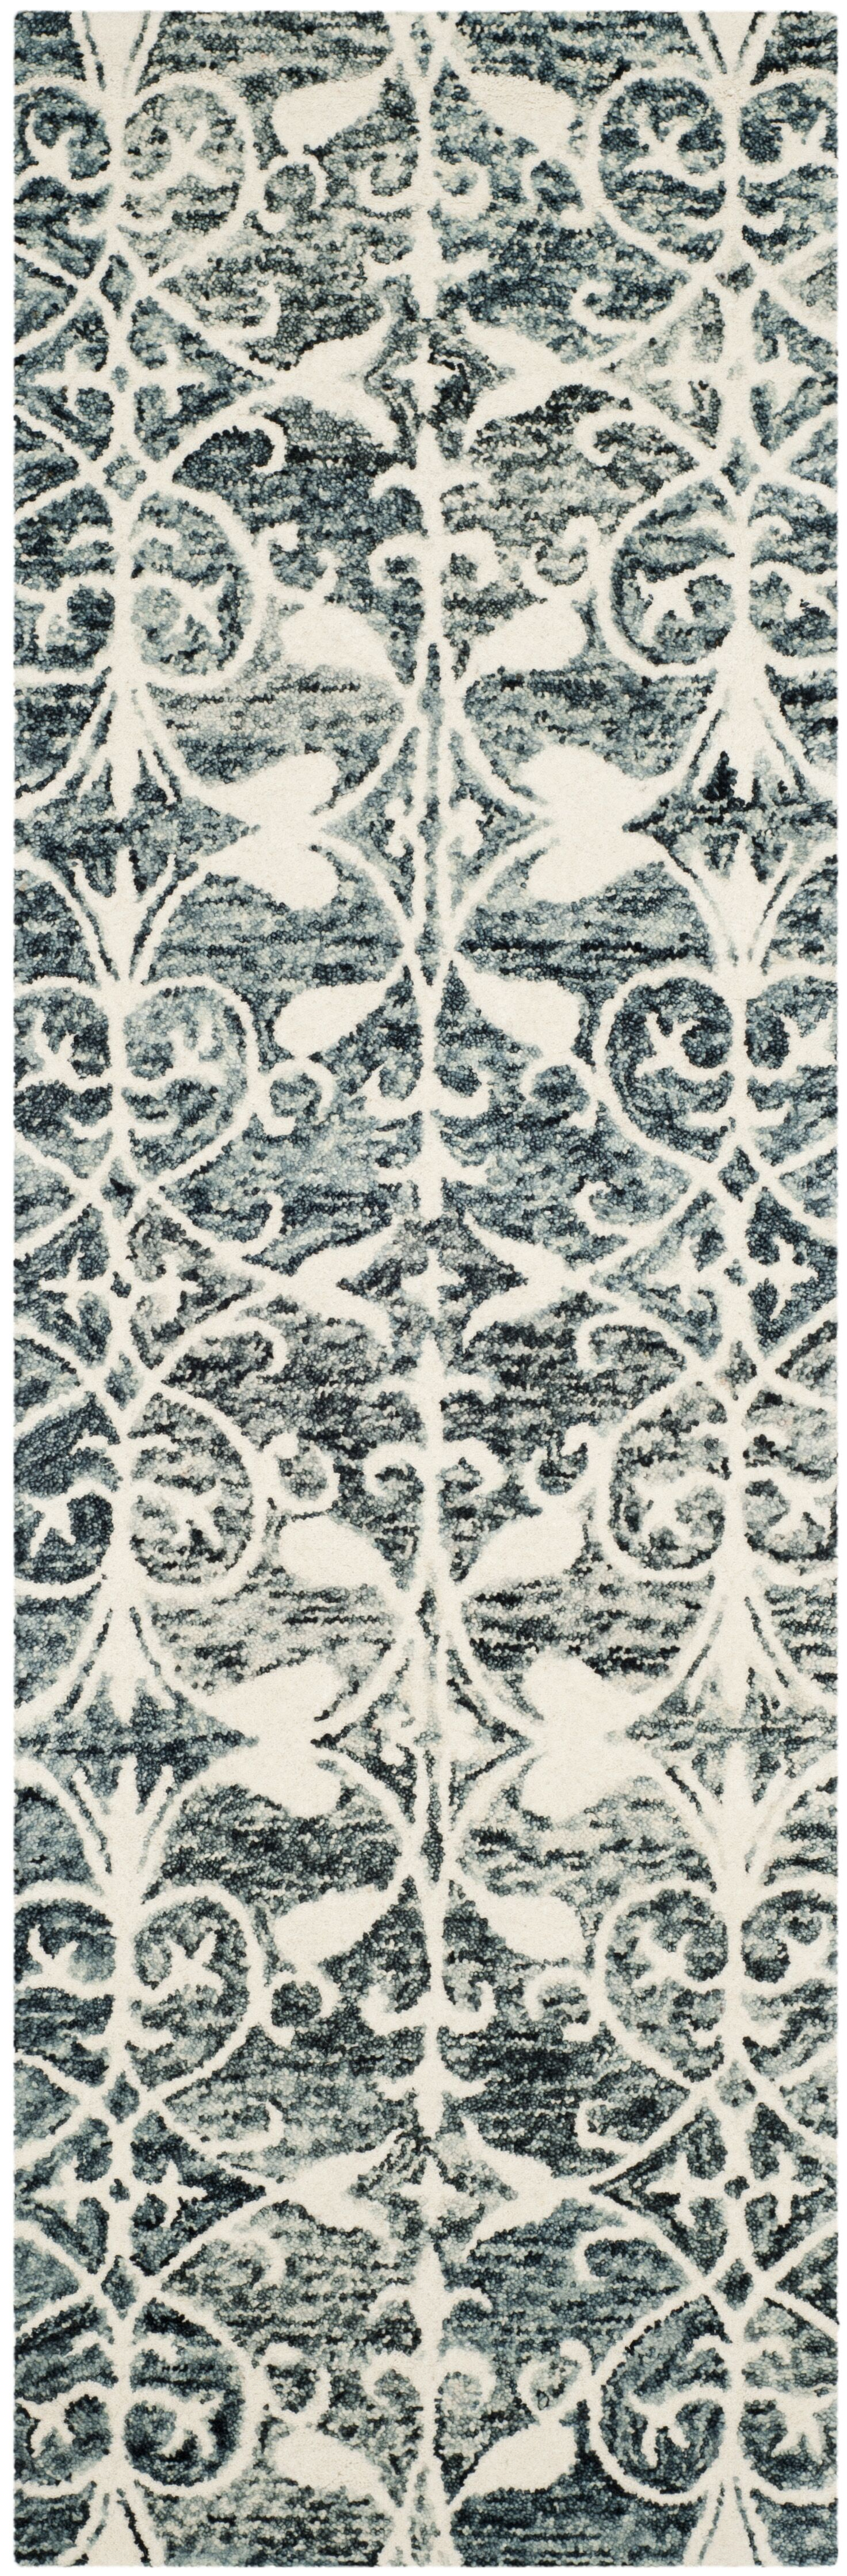 Greenmarket Hand-Tufted Charcoal/Ivory Area Rug Rug Size: Runner 2'3